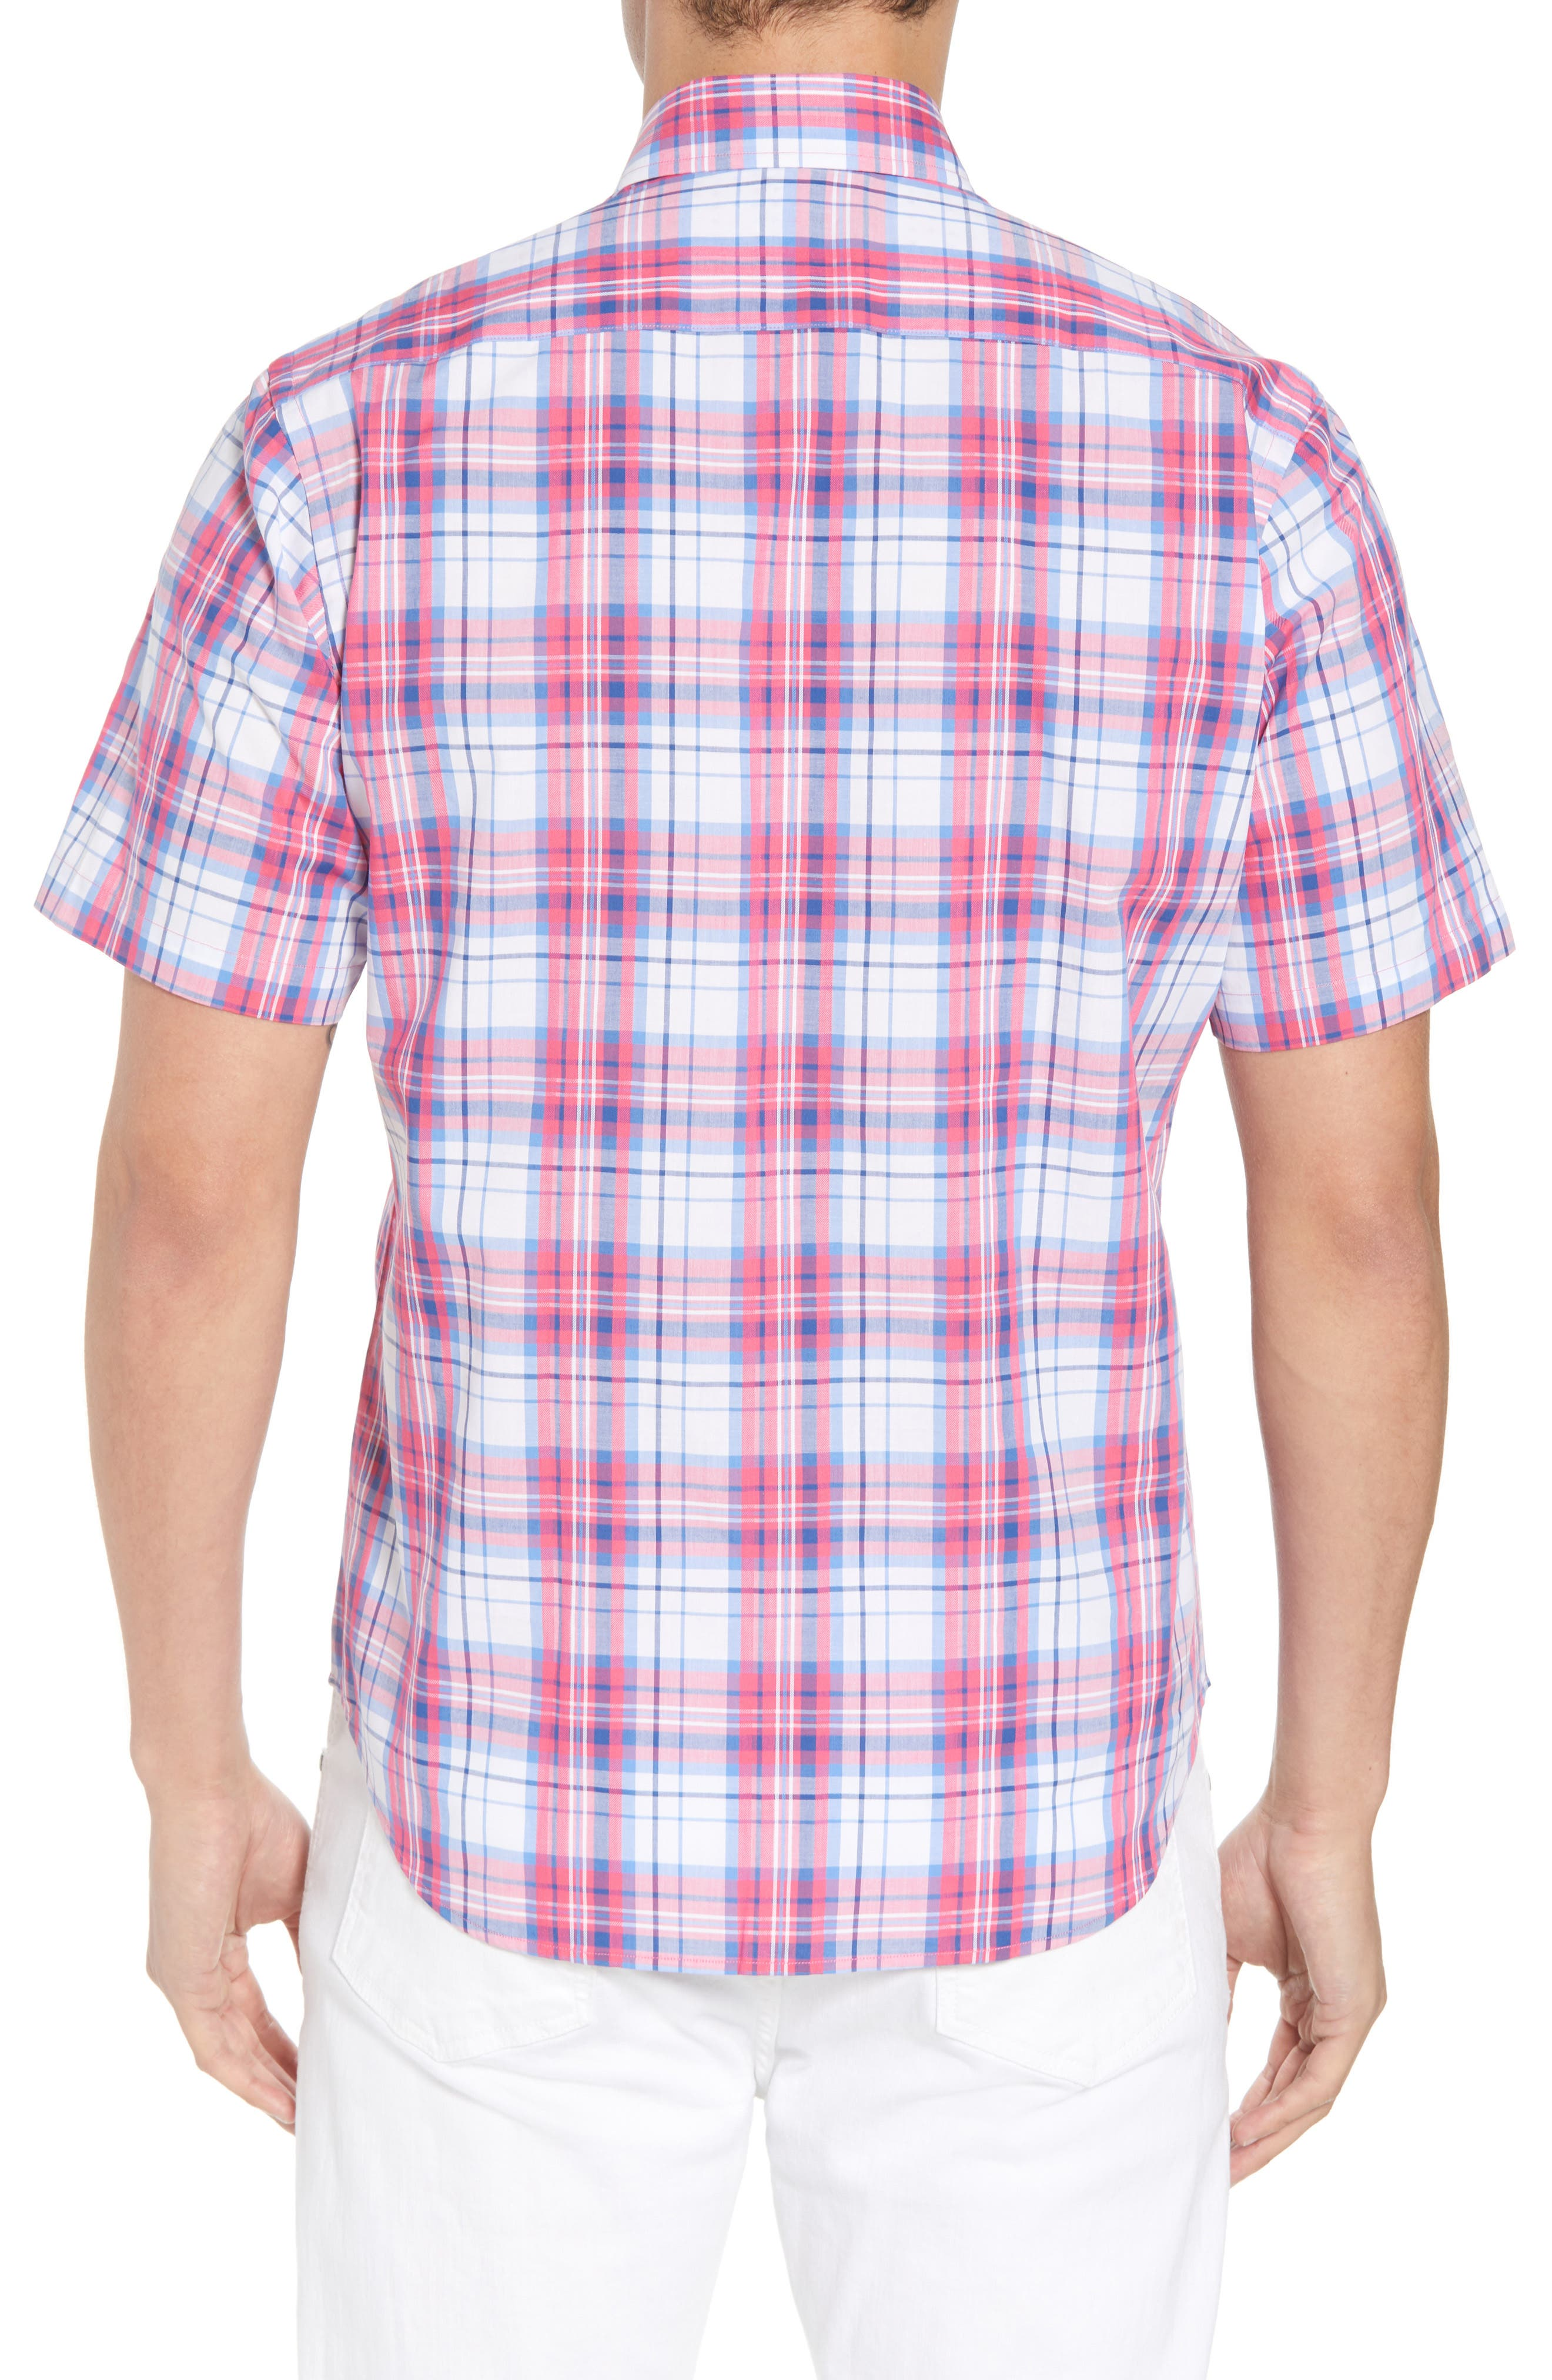 Alesso Regular Fit Plaid Sport Shirt,                             Alternate thumbnail 3, color,                             Coral